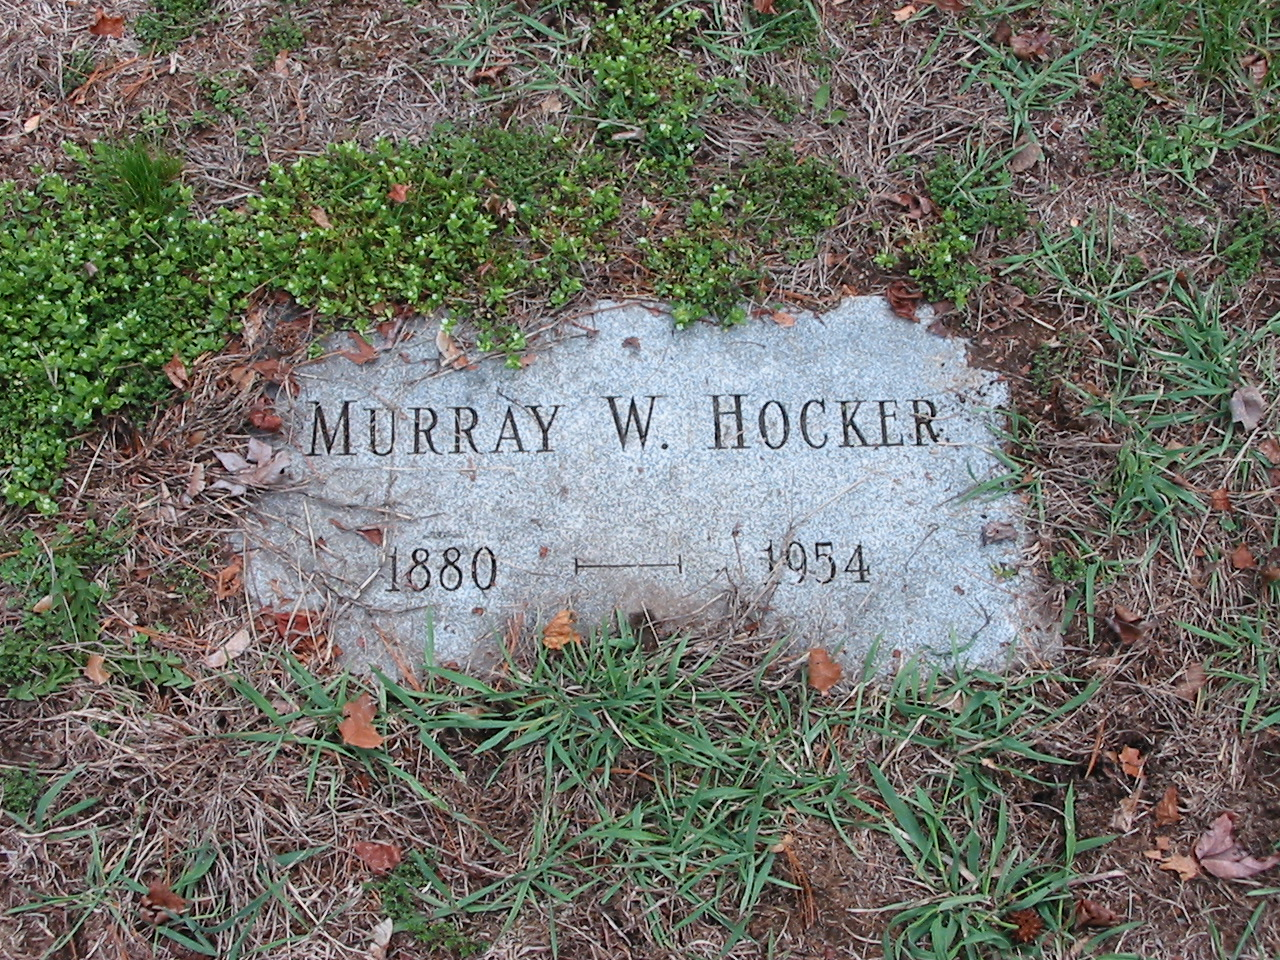 Murray W. Hocker (1880-1954)